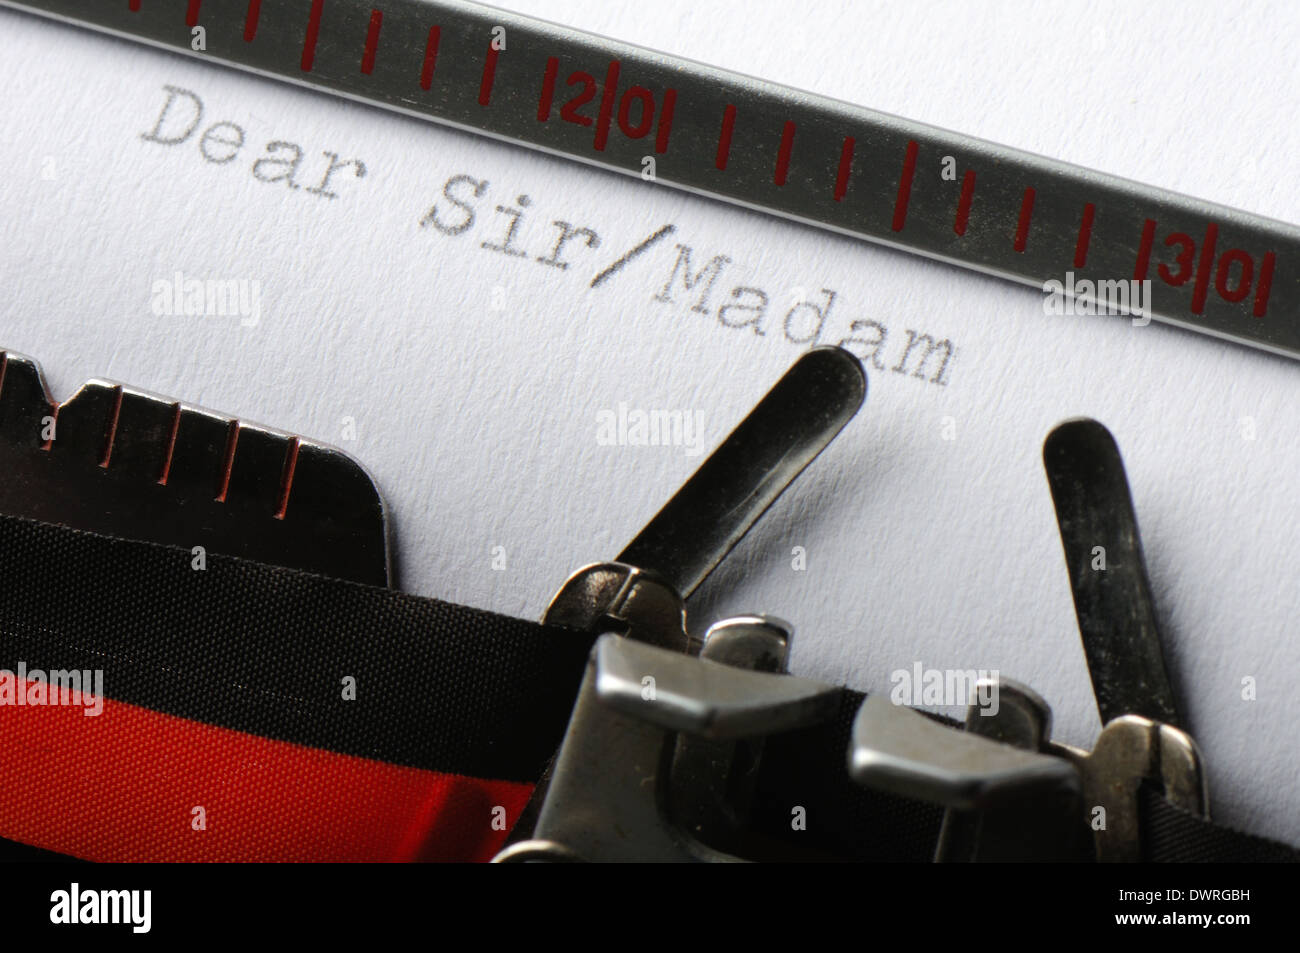 Close-up of old typewriter ribbon and type font on a sheet of paper. - Stock Image